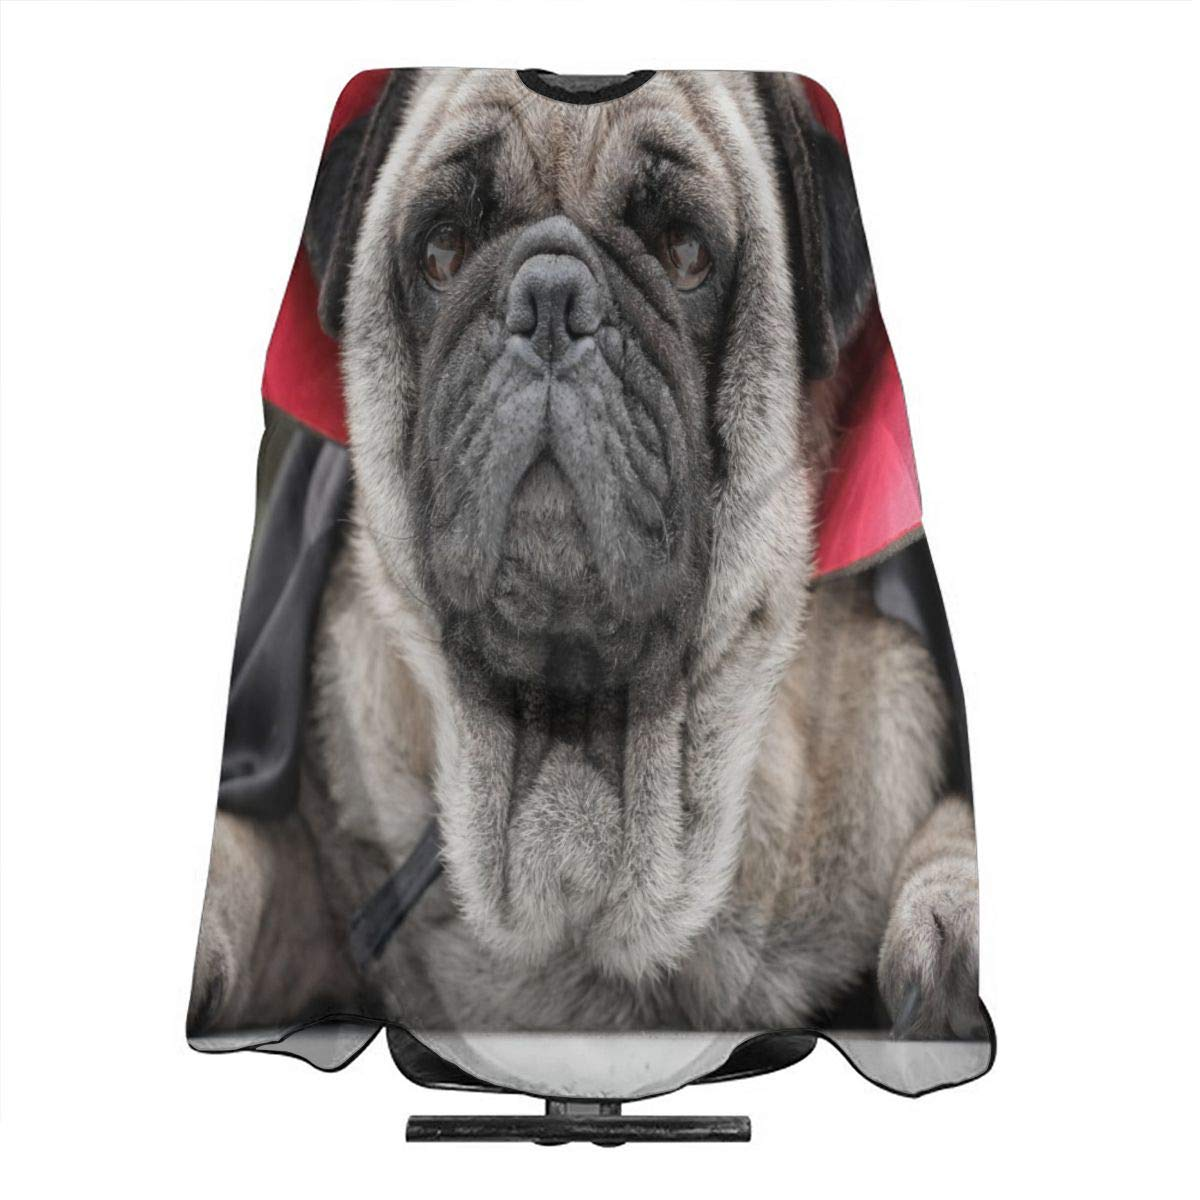 Barber Cape Dracula Pugs Dog In Halloween Ghost Costume Professional Salon Hair Cutting Capes For Hair Stylist Waterproof Haircut Hairstylist Clients Hairstylist Capes For Adult Men Women Kids